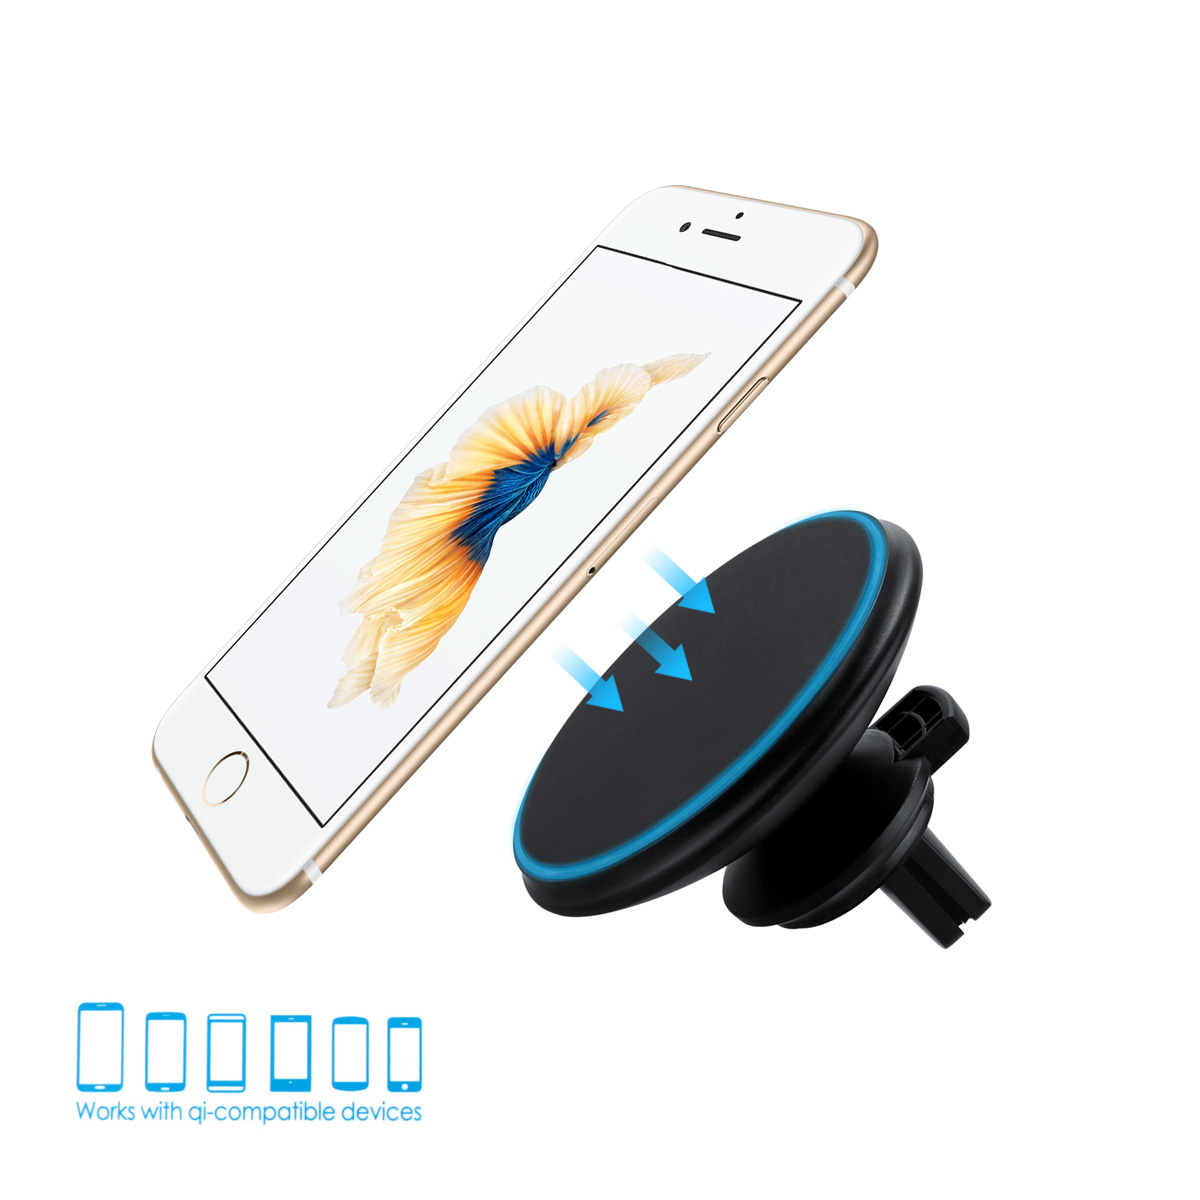 Magnetic phone charger car mount 8